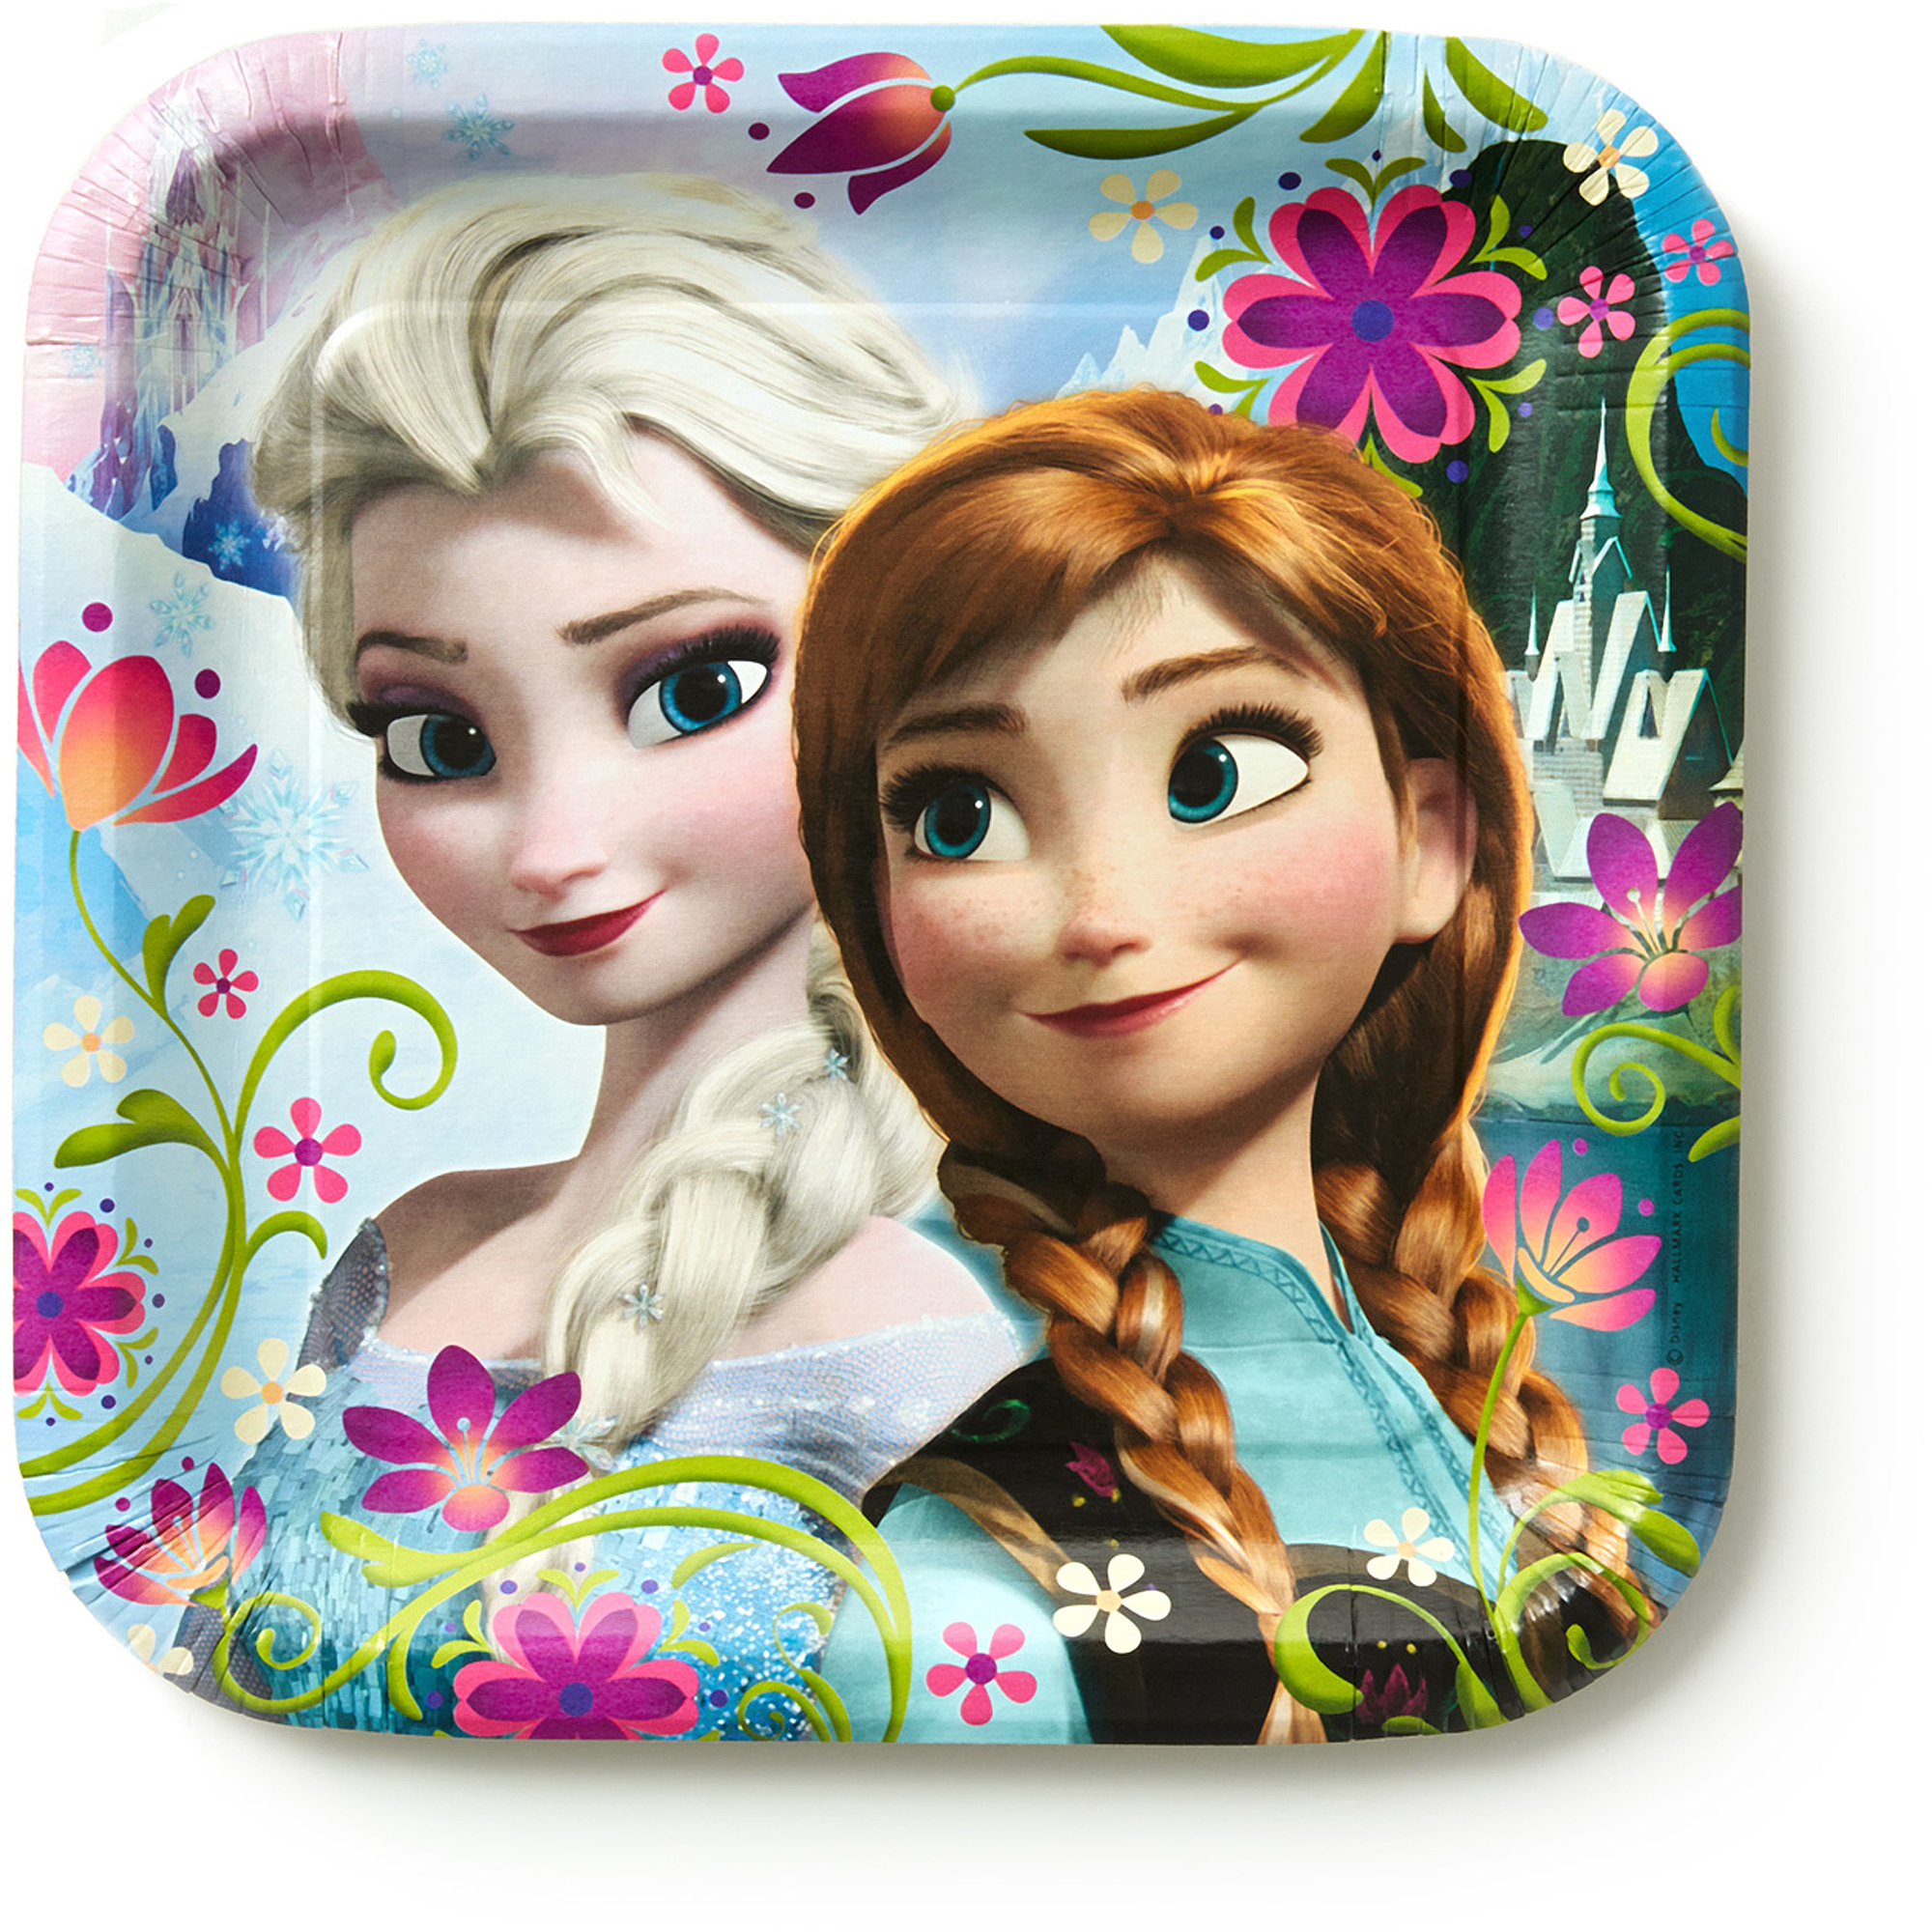 sc 1 st  Walmart & Hallmark Party Disney Frozen Dinner Plates - Walmart.com